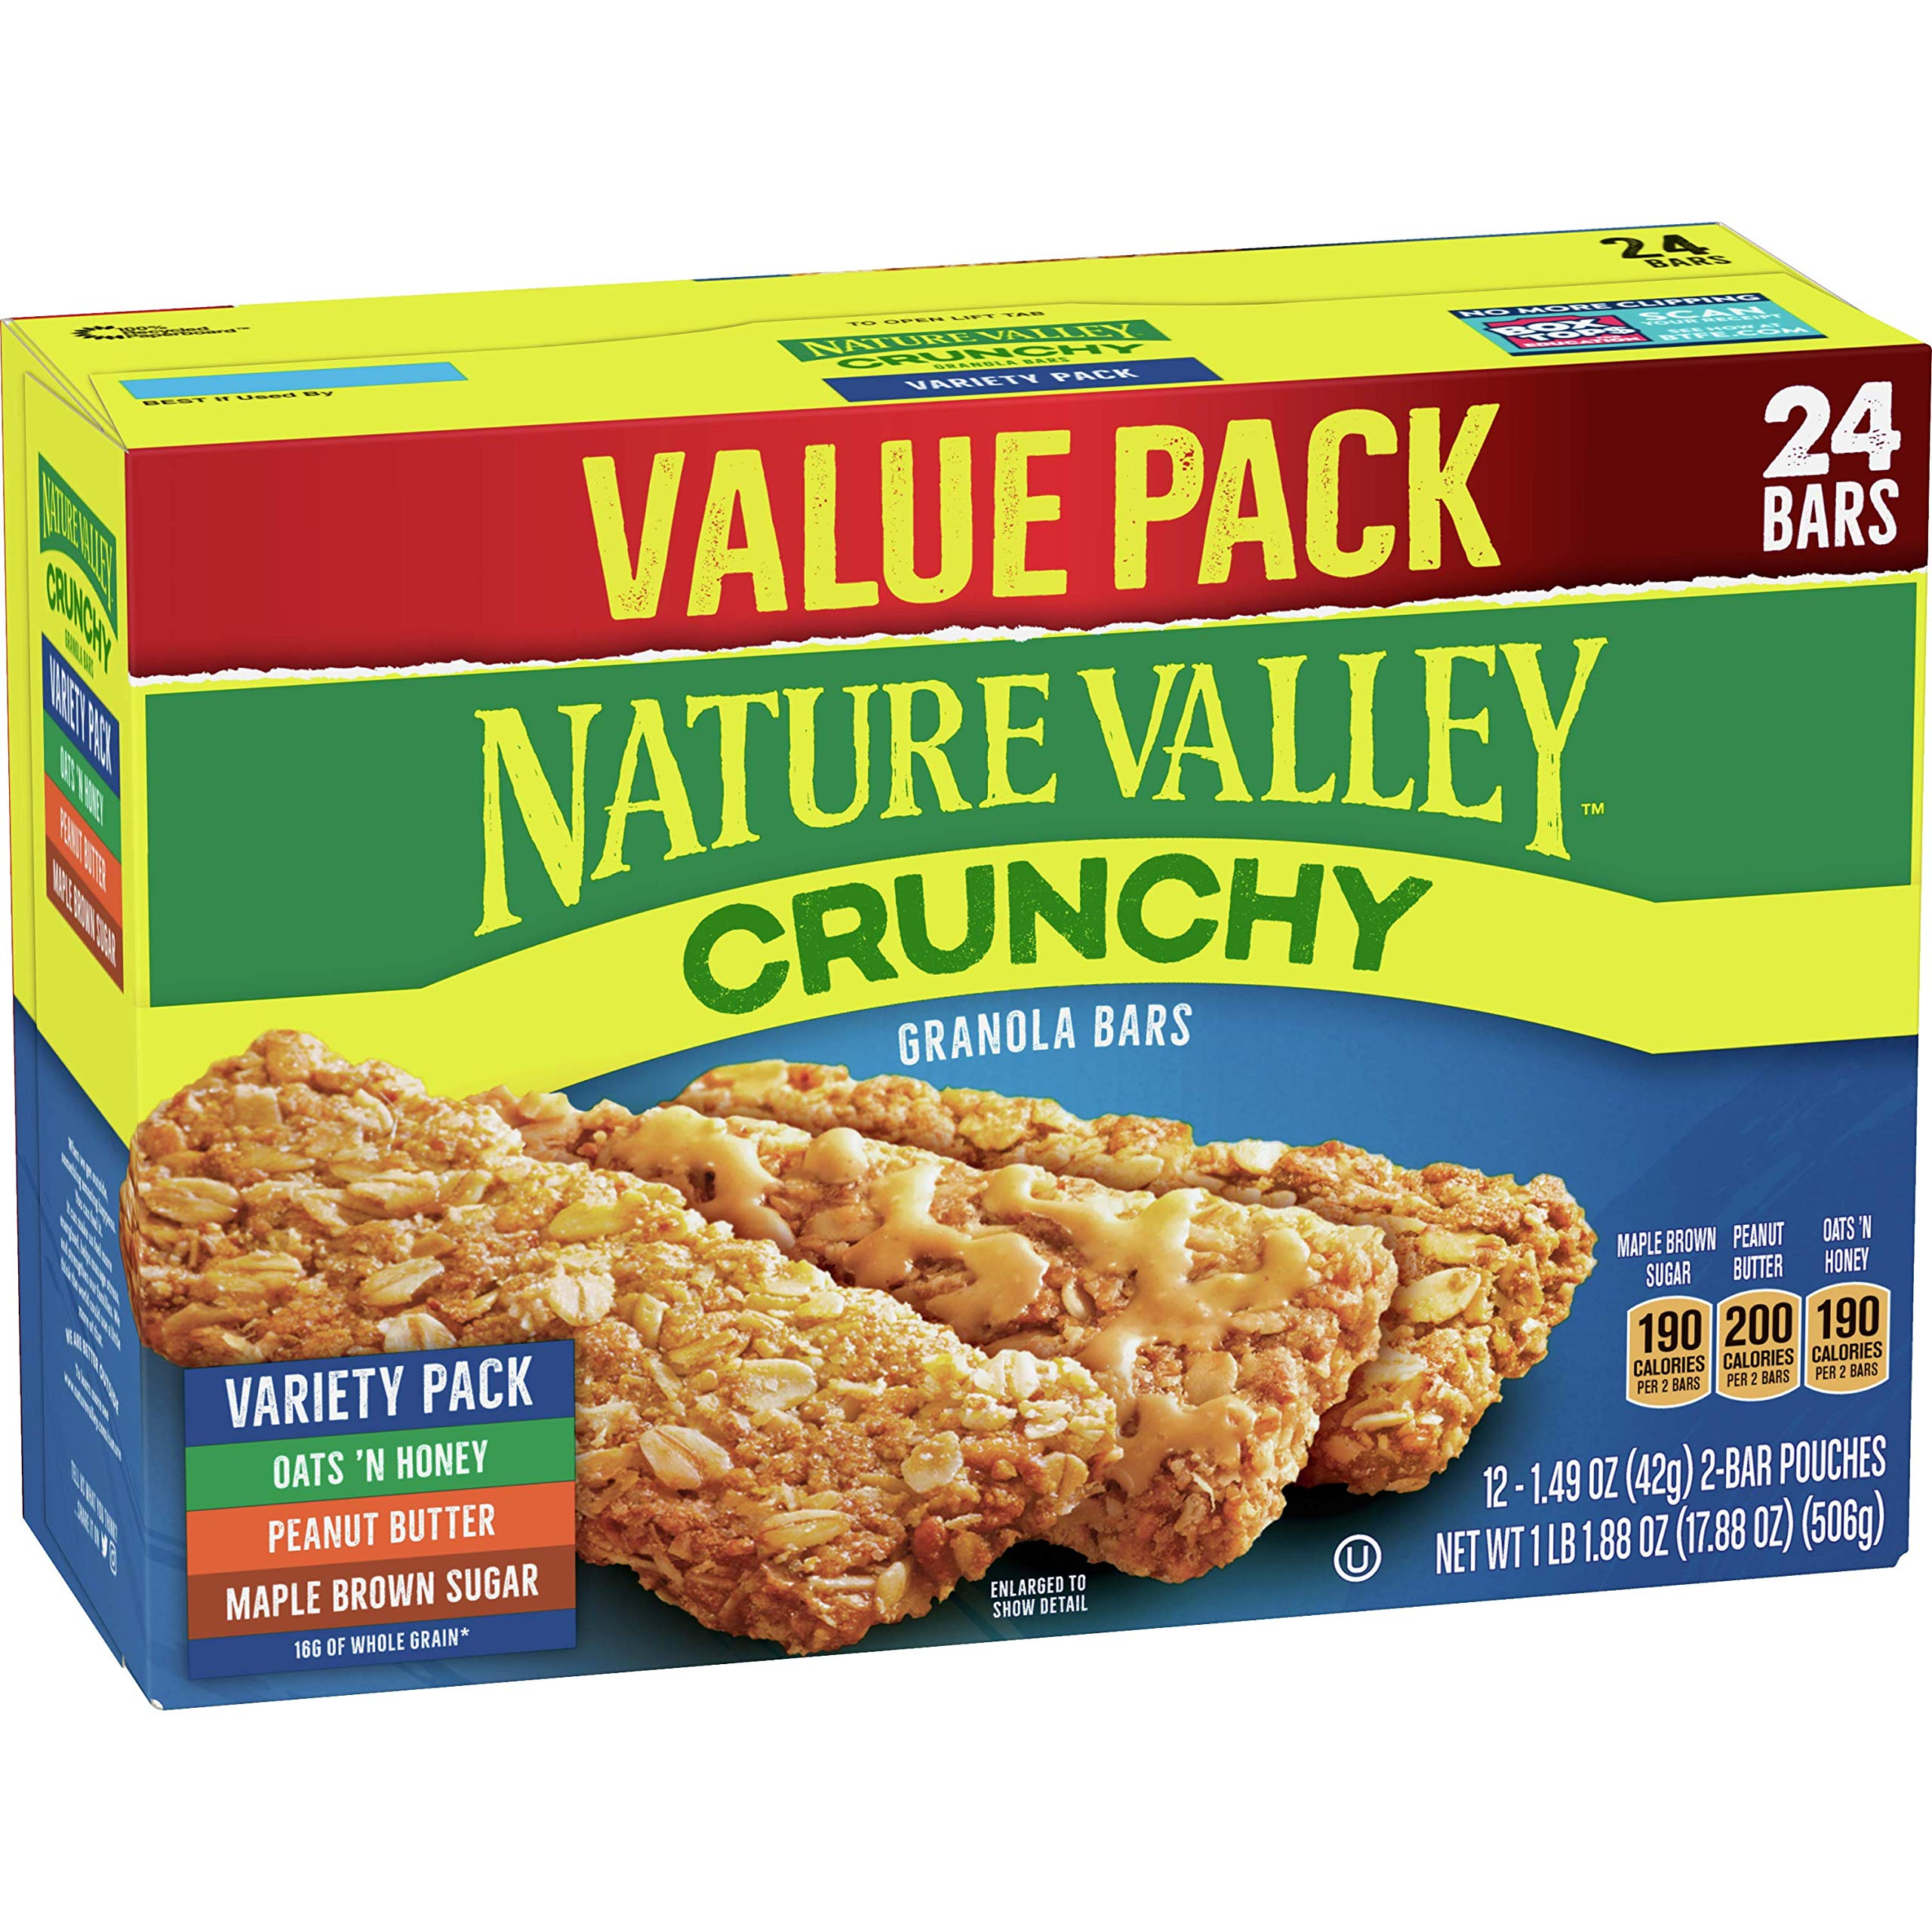 Nature Valley Crunchy Granola Bar Variety Pack, 24 Bars, 17.88 oz